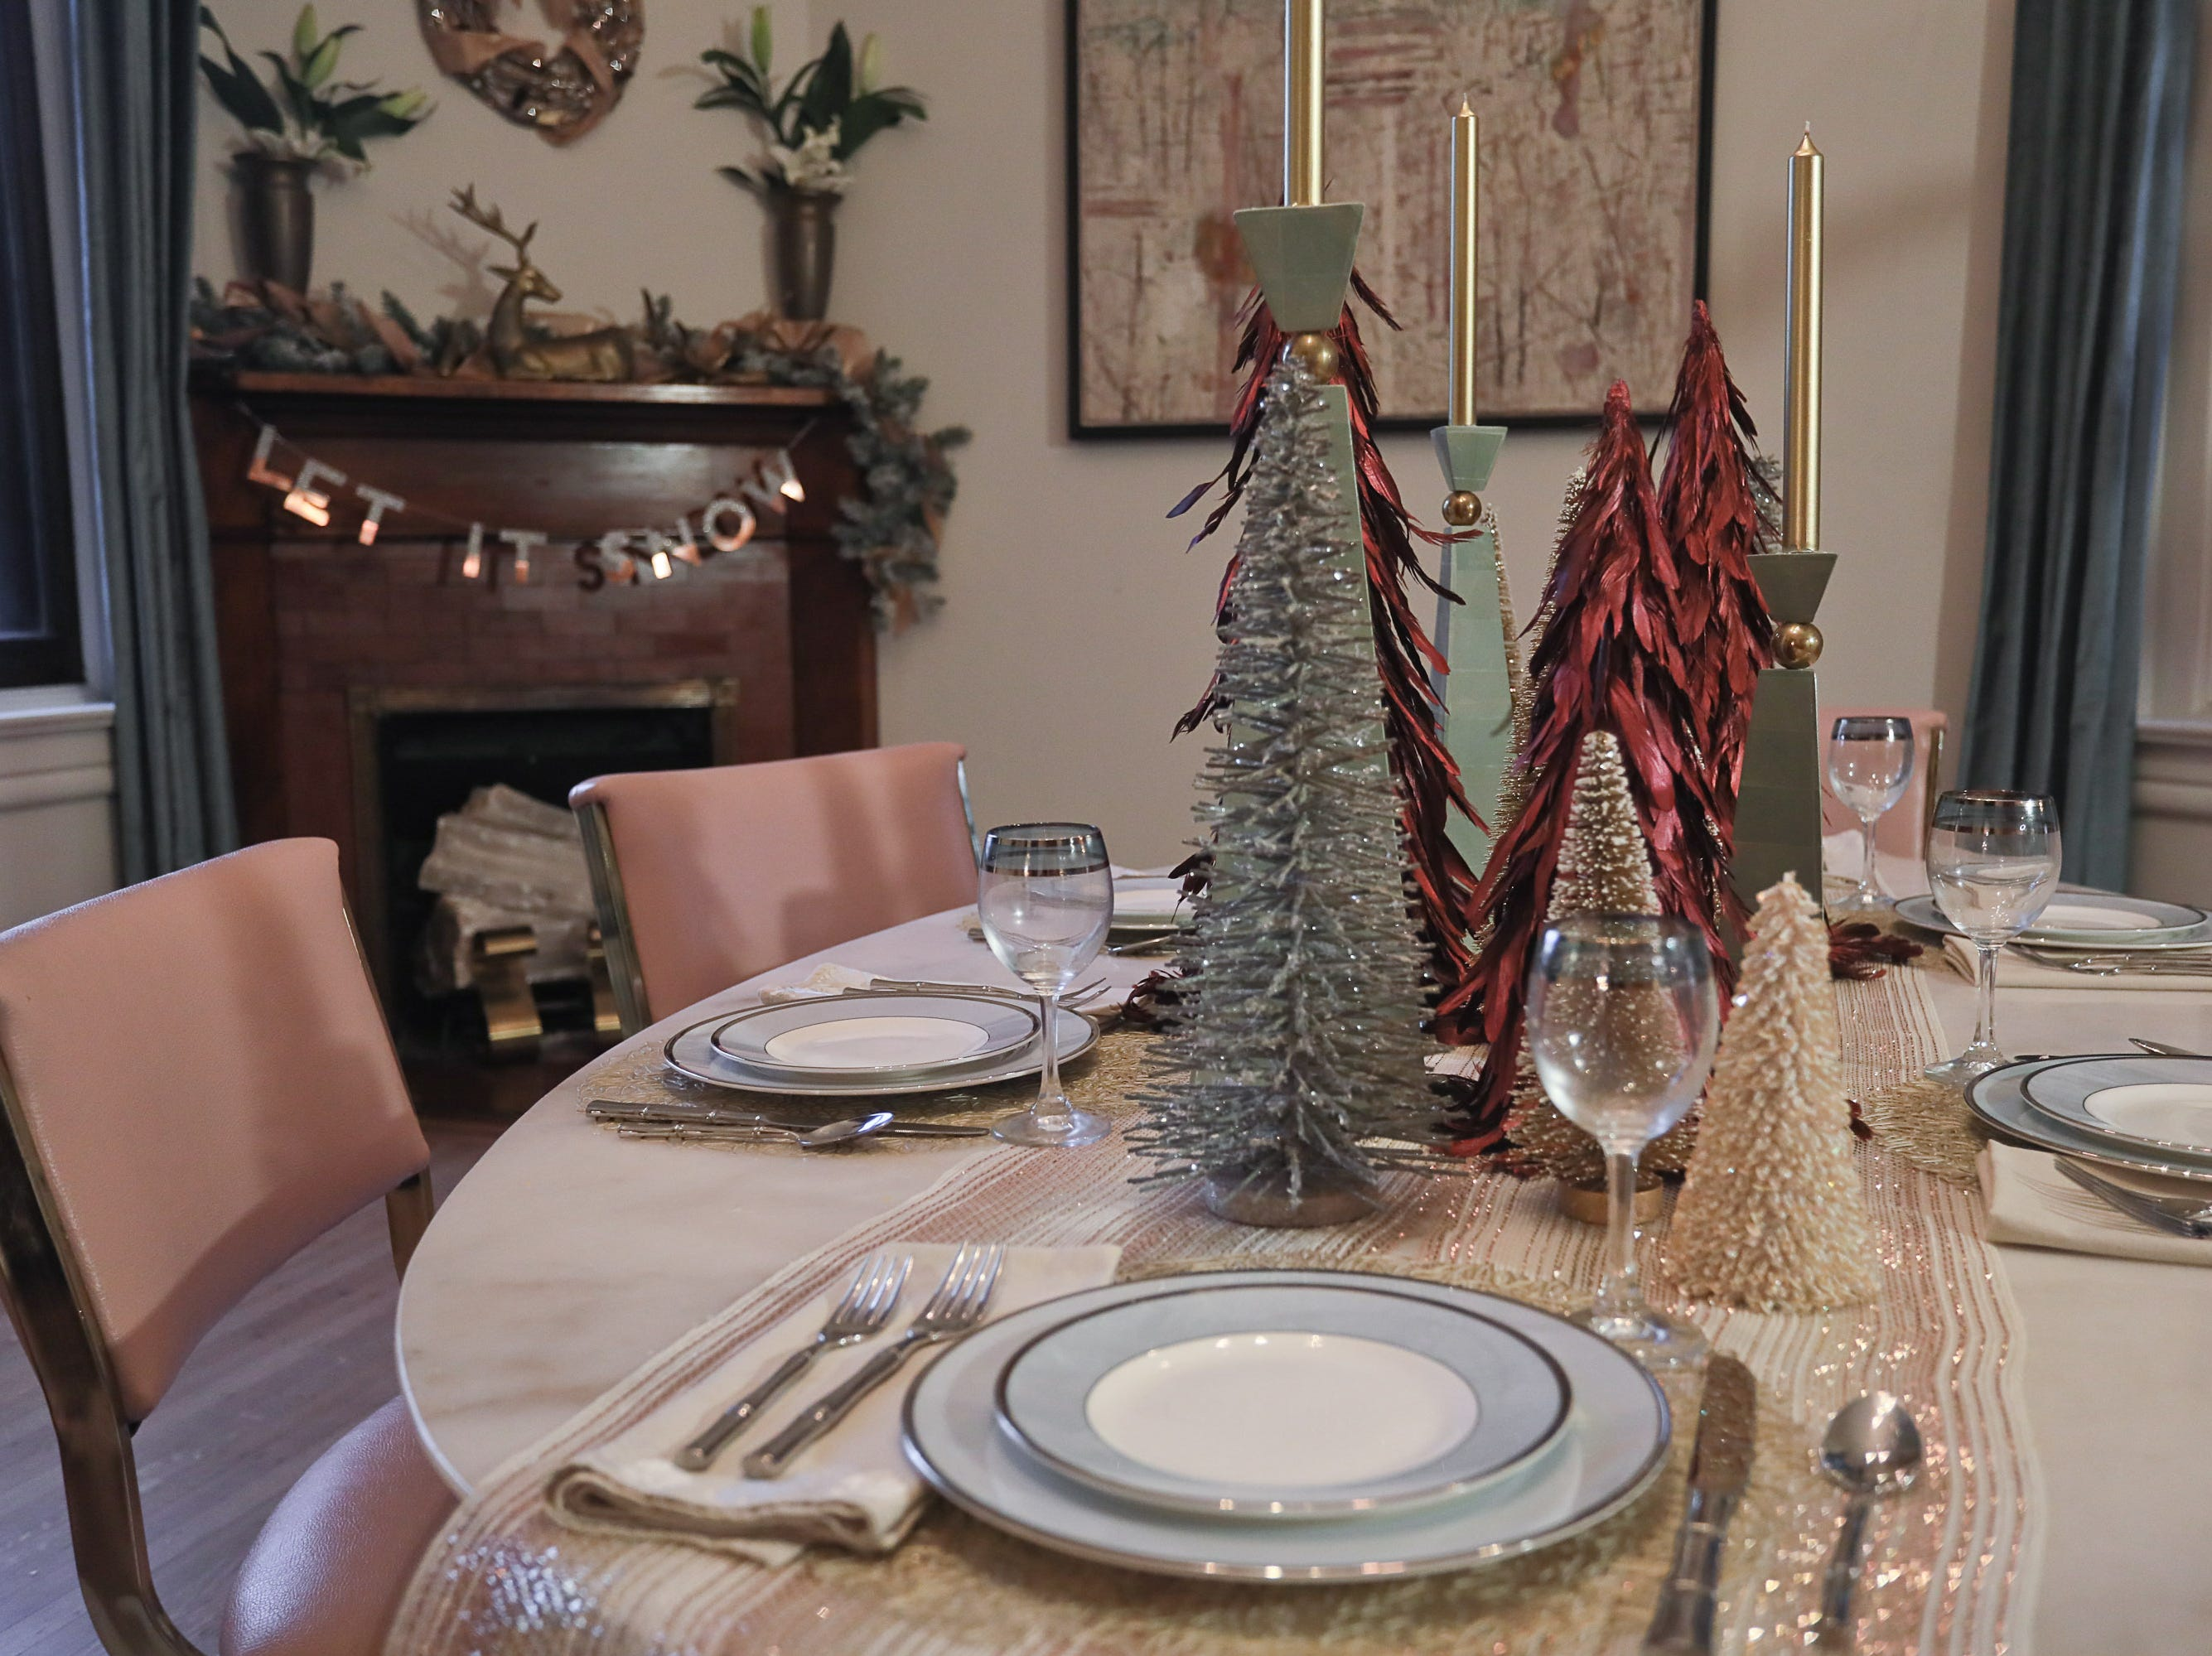 The dining room at the home of Bethany Adams in Louisville, KY. Nov. 13, 2018